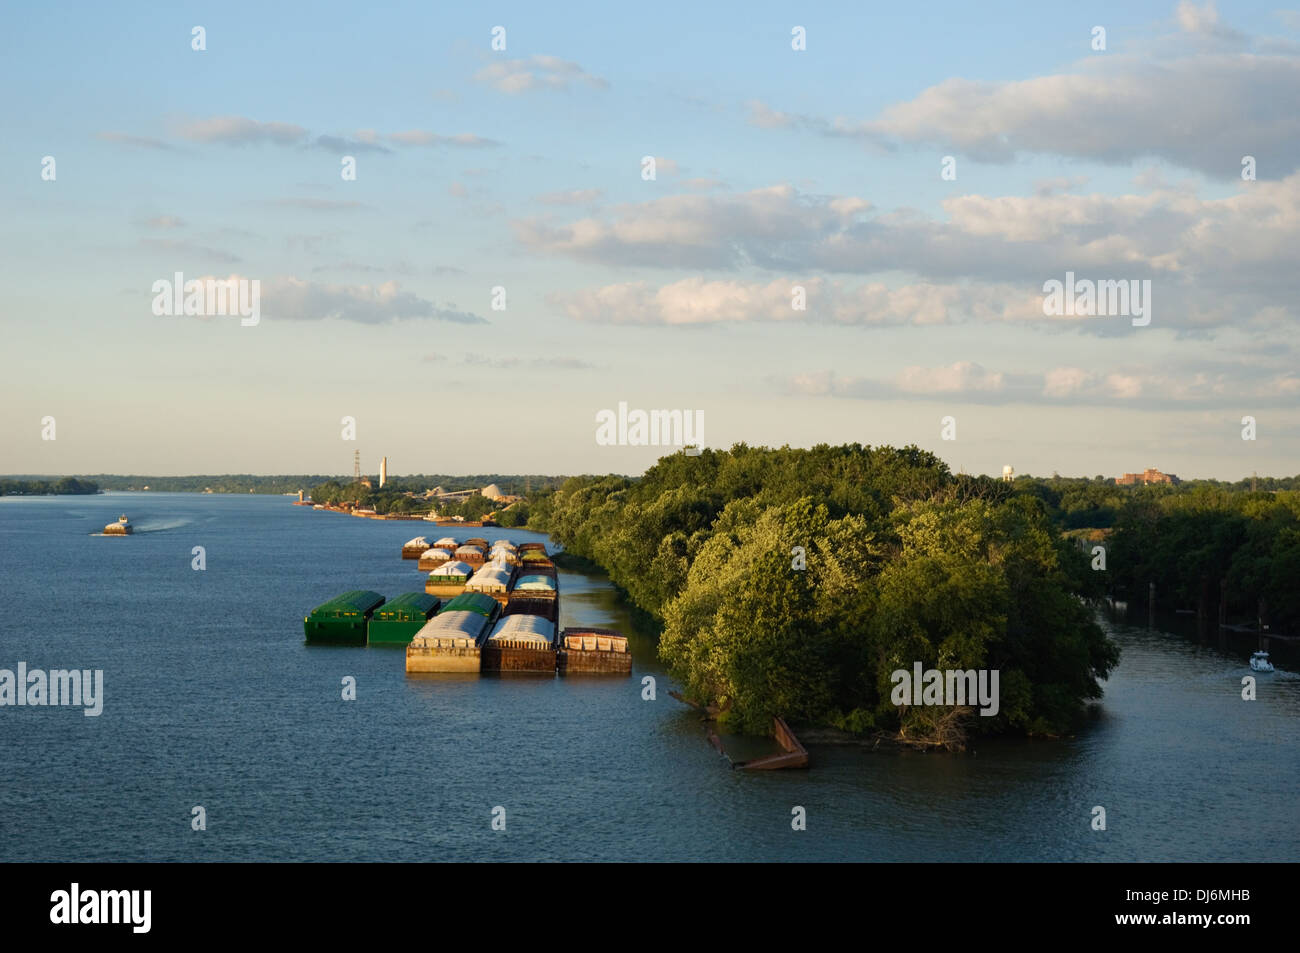 Barges on the Ohio River in Louisville, Kentucky - Stock Image